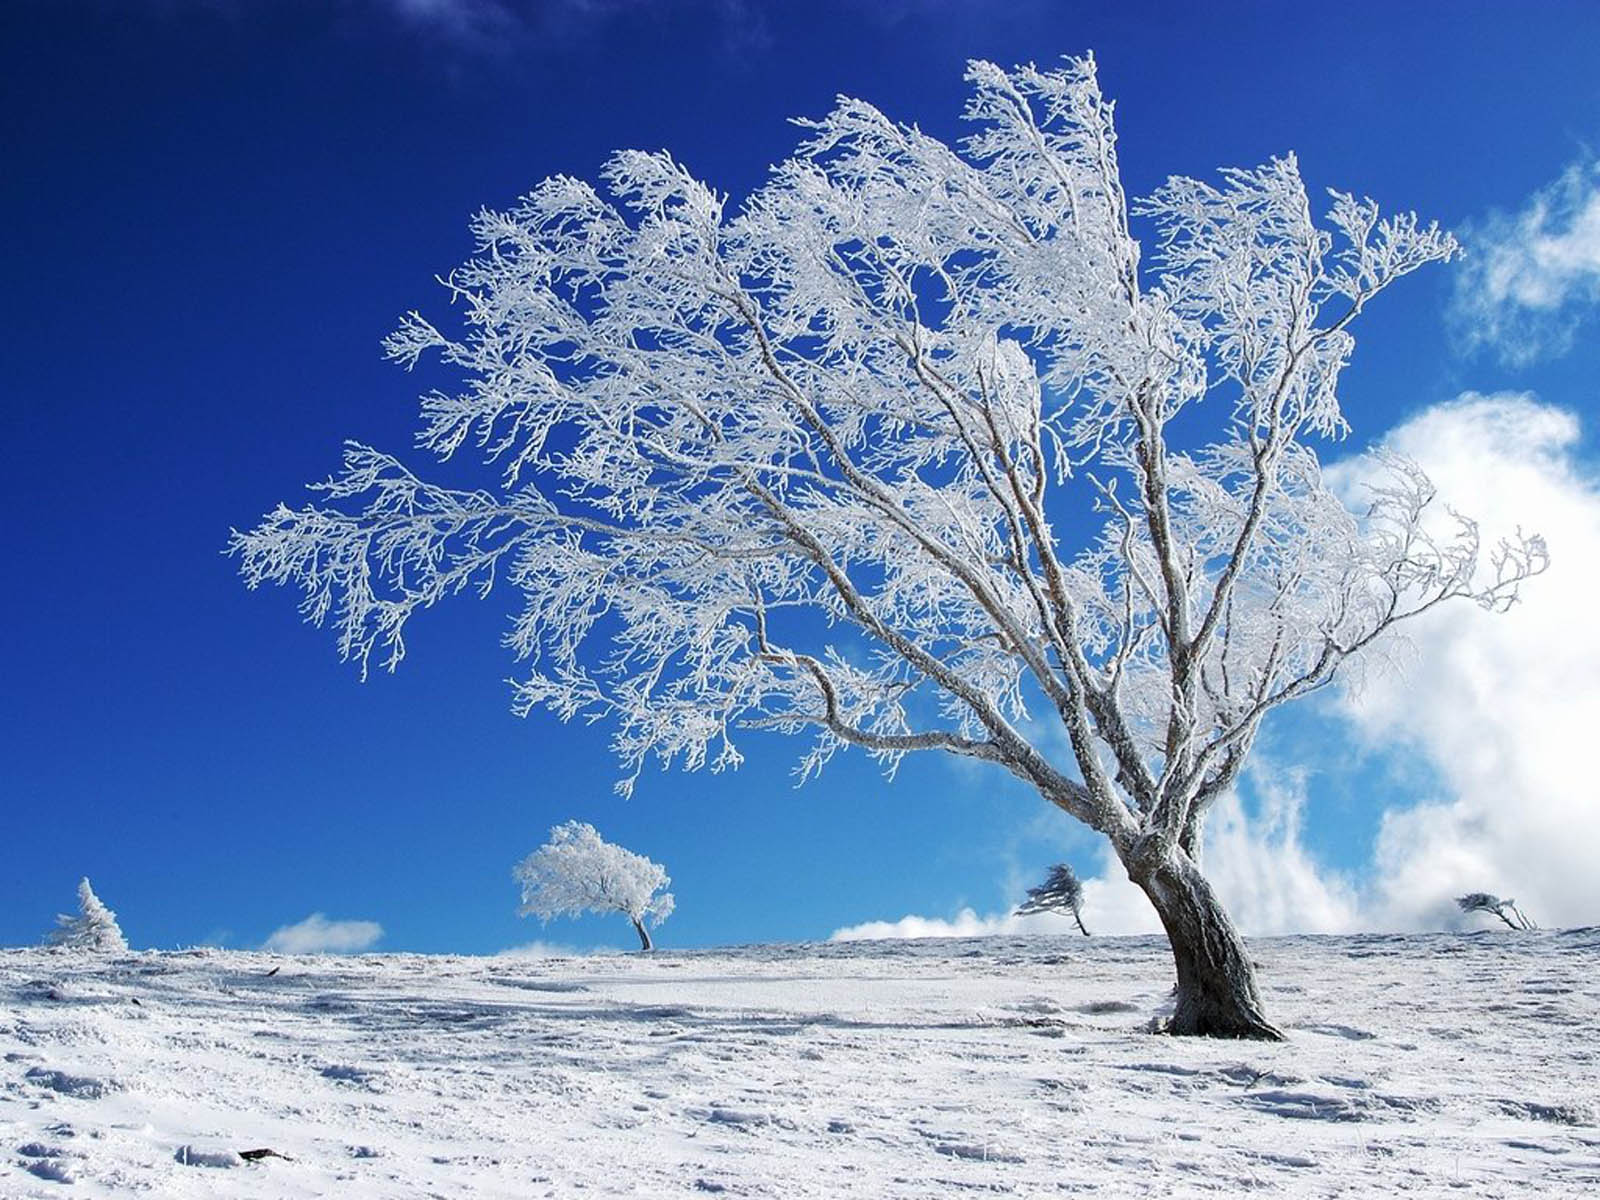 wallpaper Winter Desktop Wallpapers and Backgrounds 1600x1200